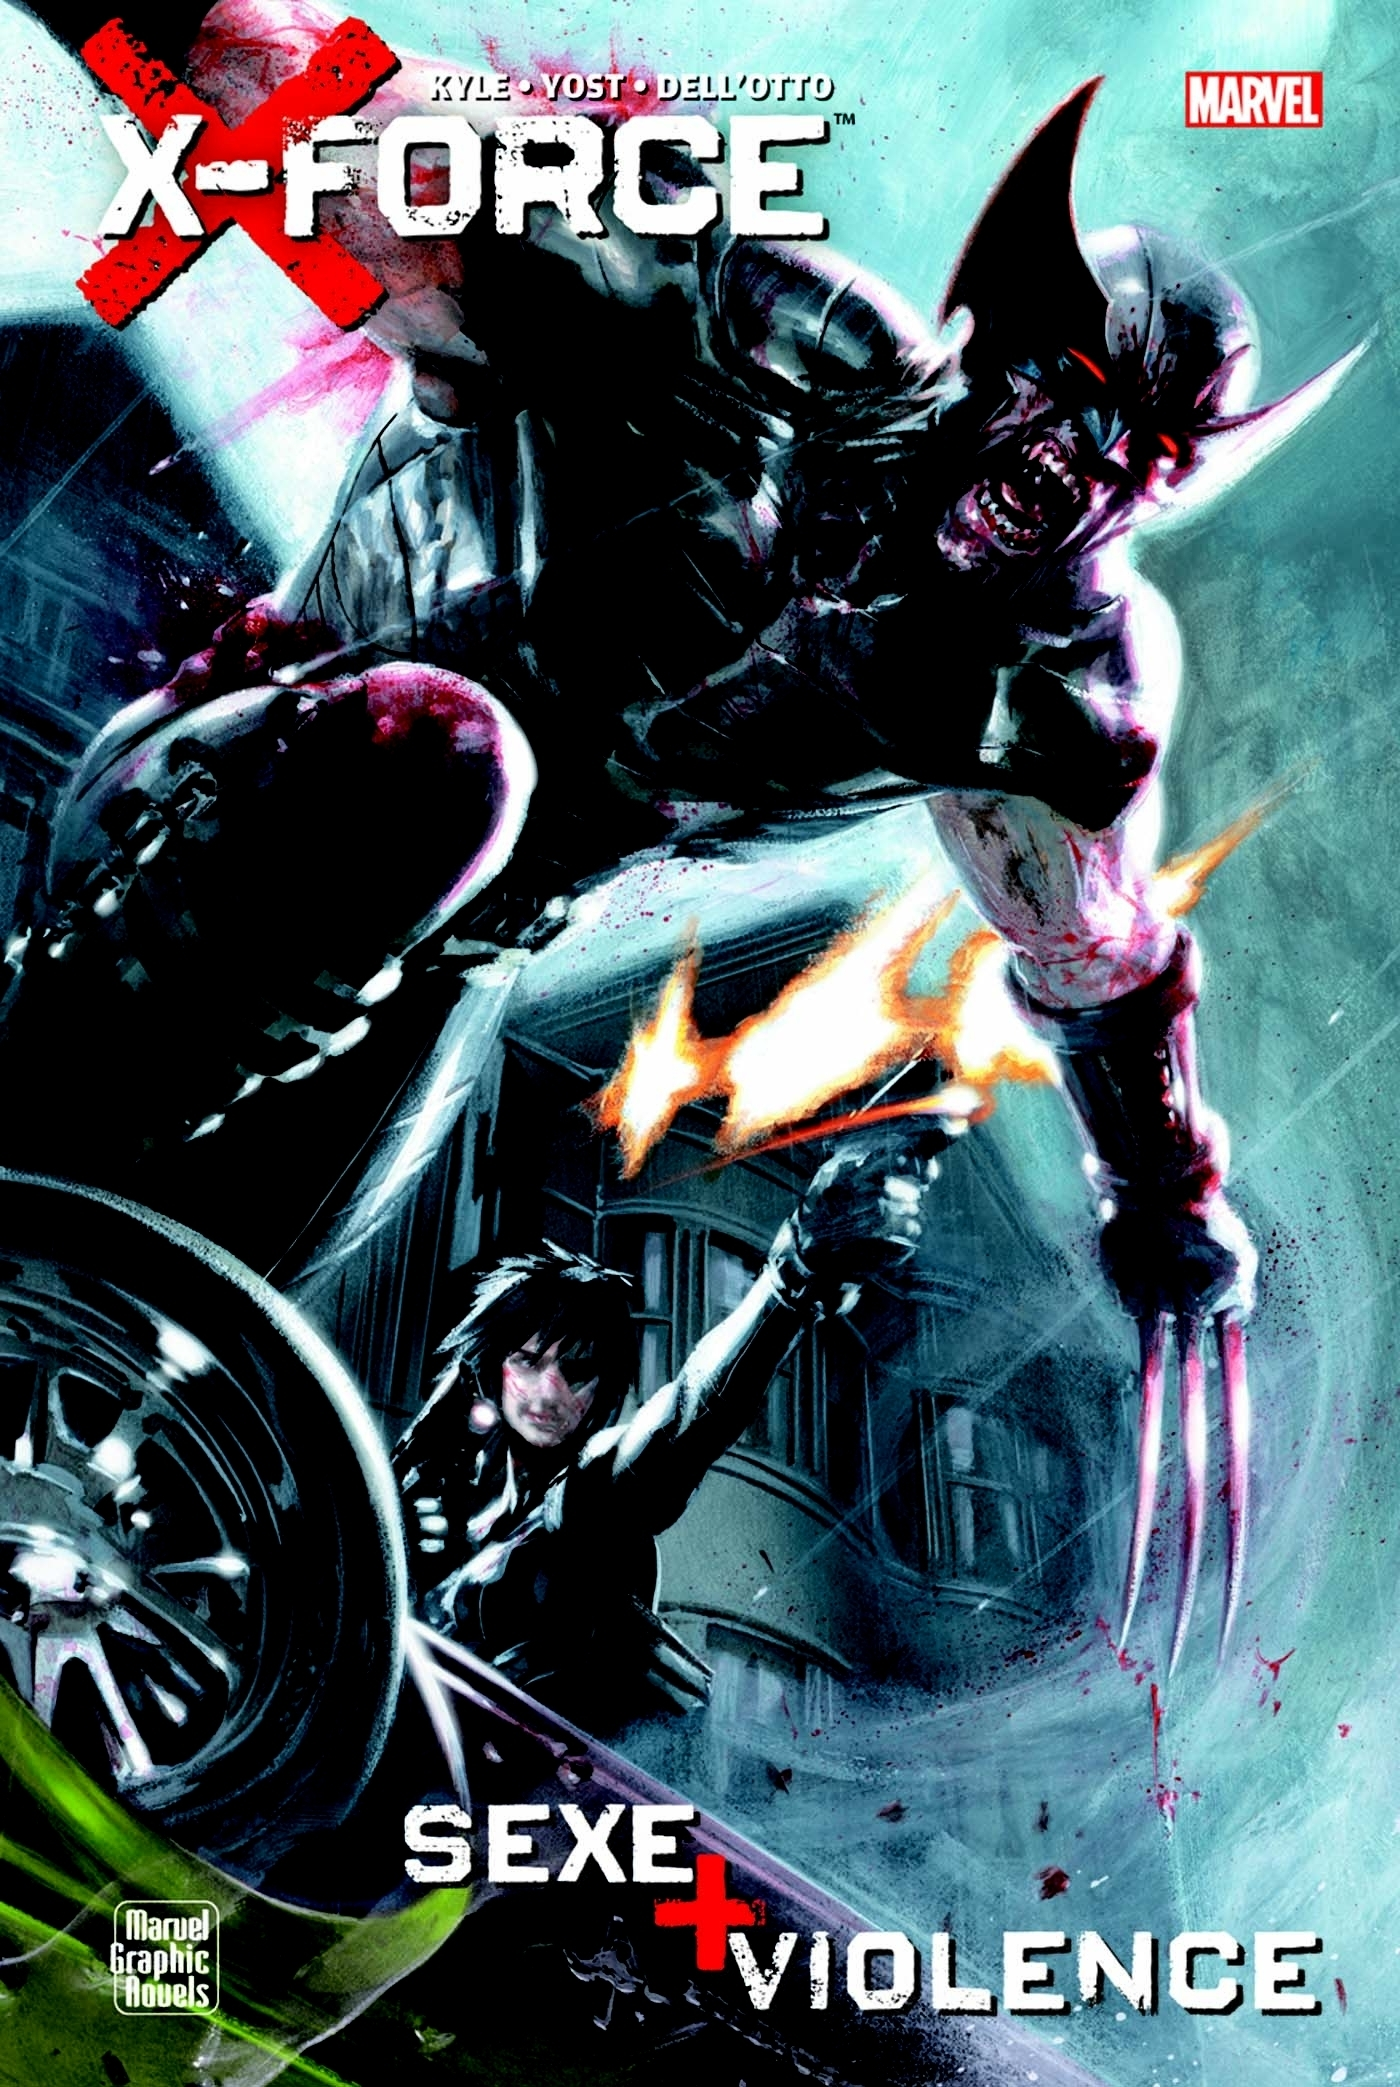 X-FORCE - SEXE + VIOLENCE ED. SPECIALE